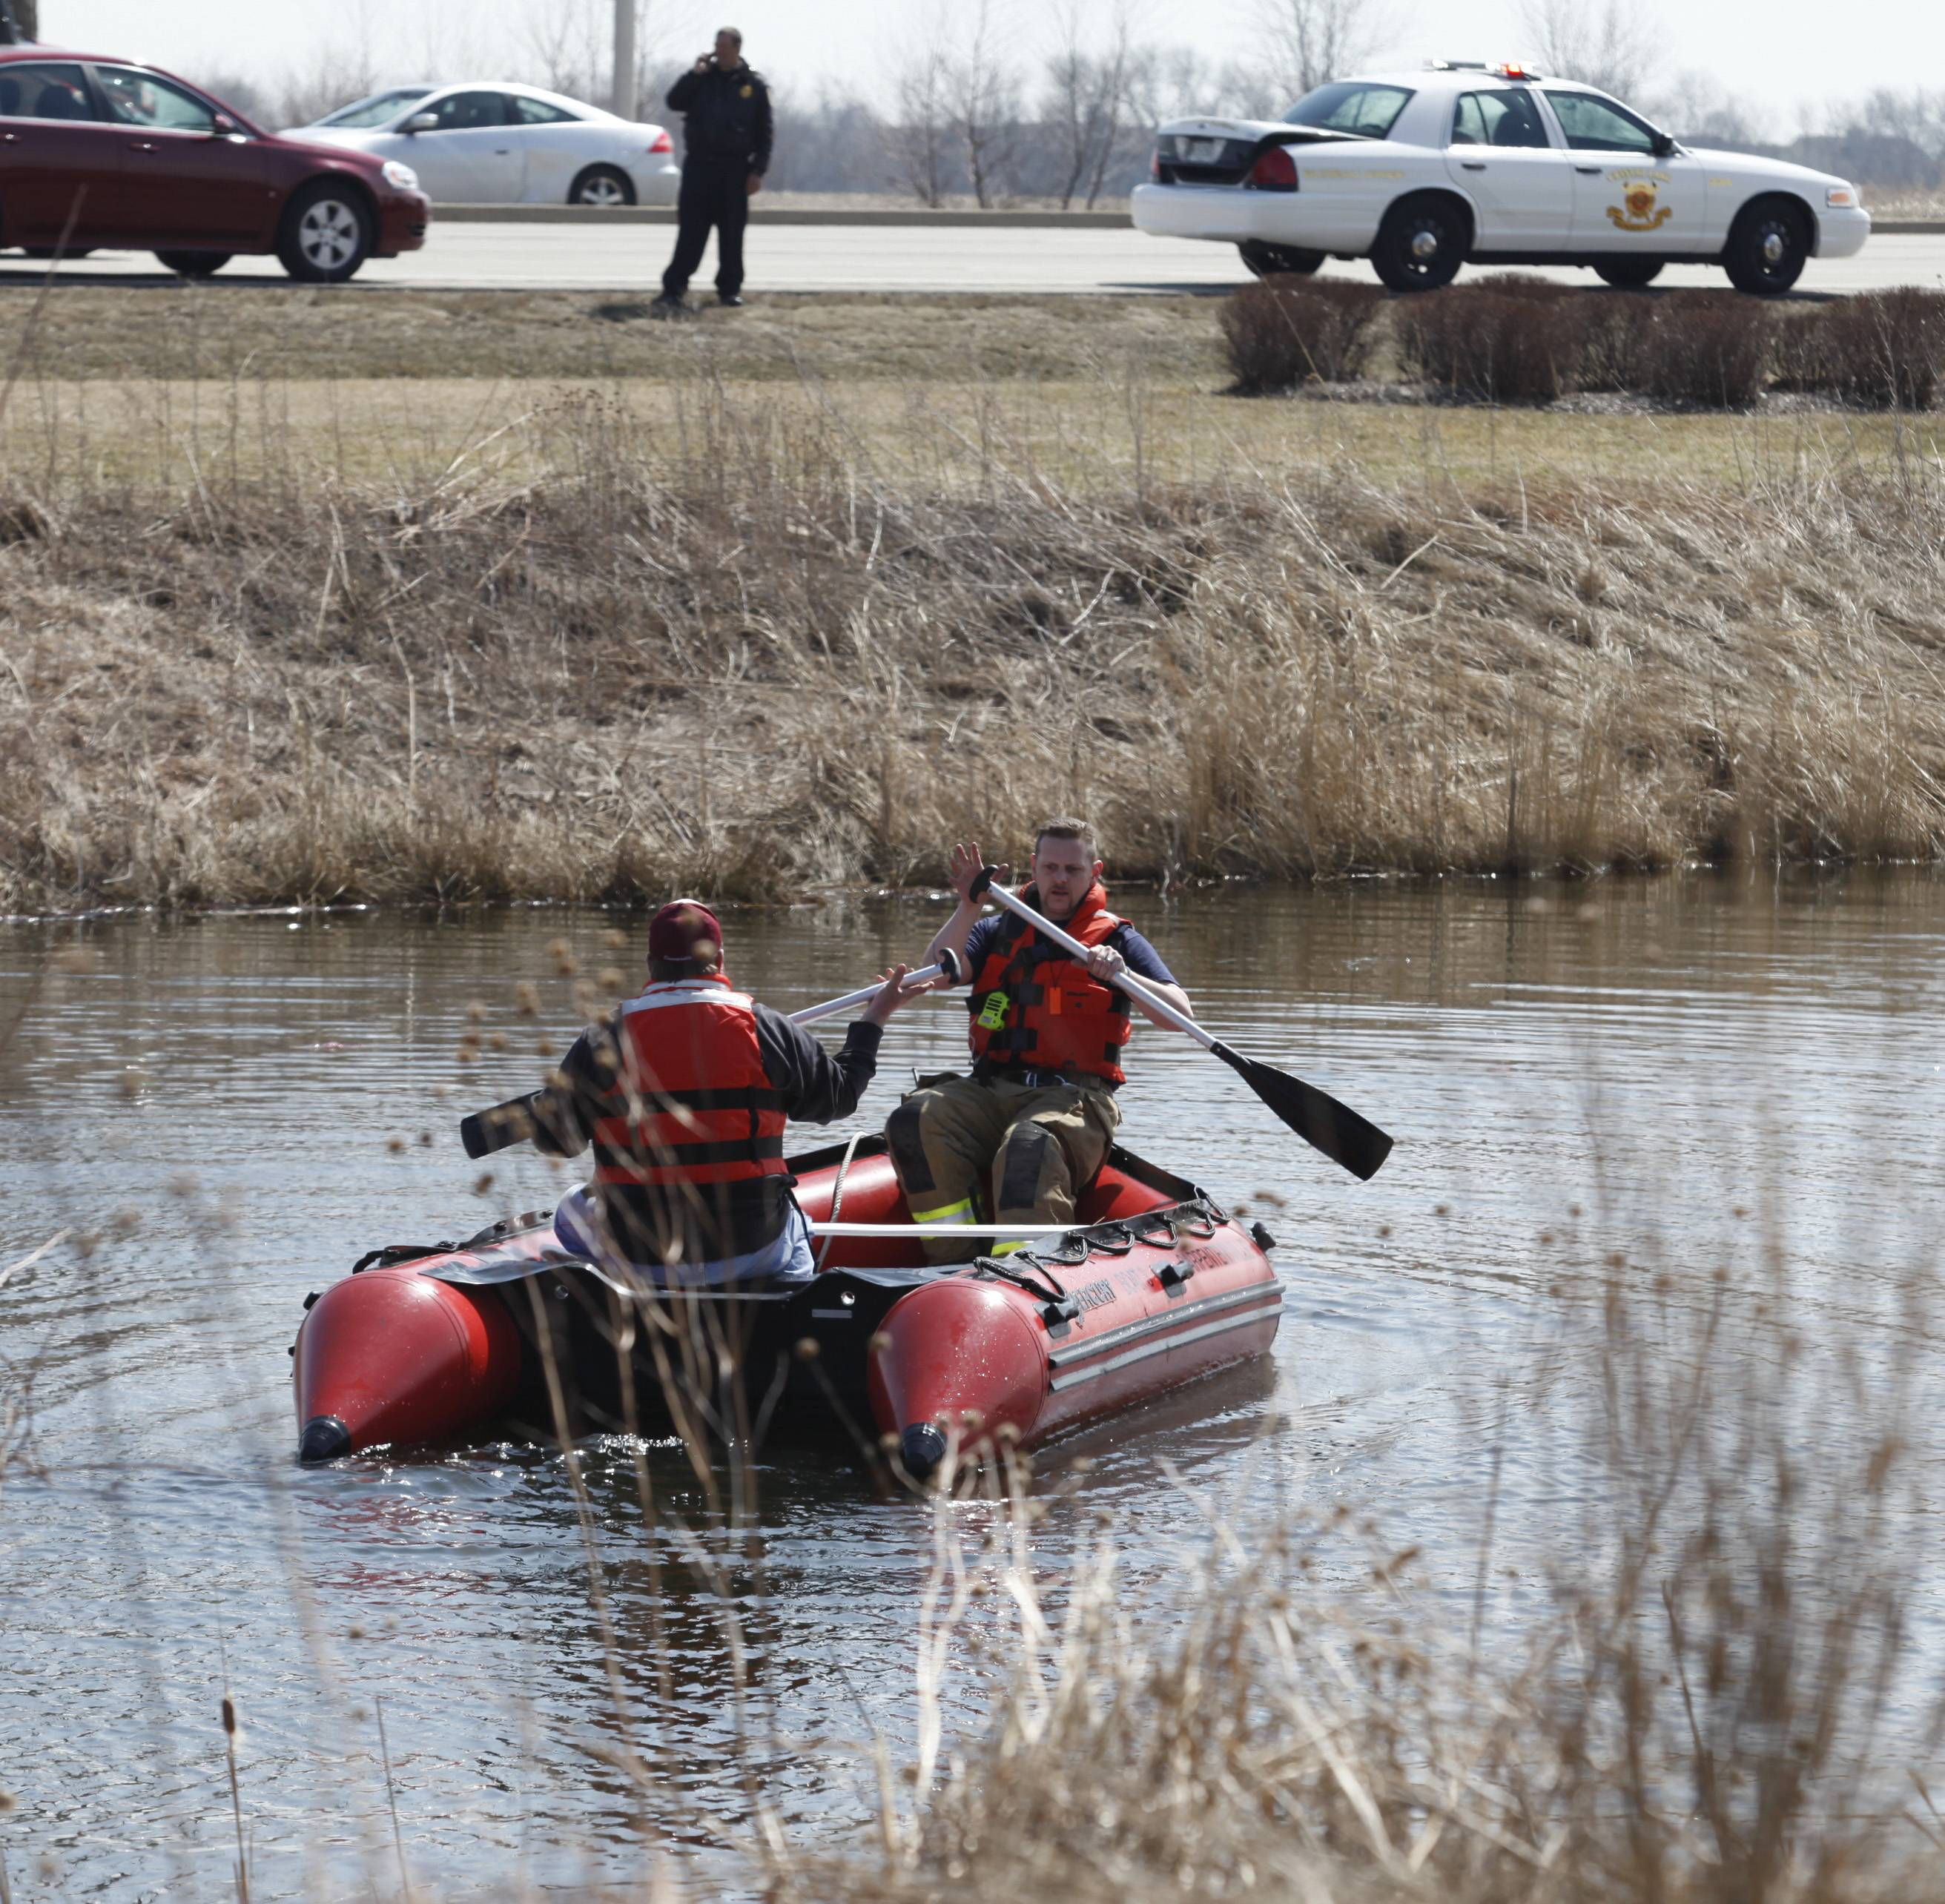 Firefighters continue to search a pond near Algonquin Commons Wednesday after a car went into the pond and the driver had to be rescued. Algonquin resident Paul Mellor, 57, the car's driver, was unconscious and not breathing when first responders pulled him from the sinking car.